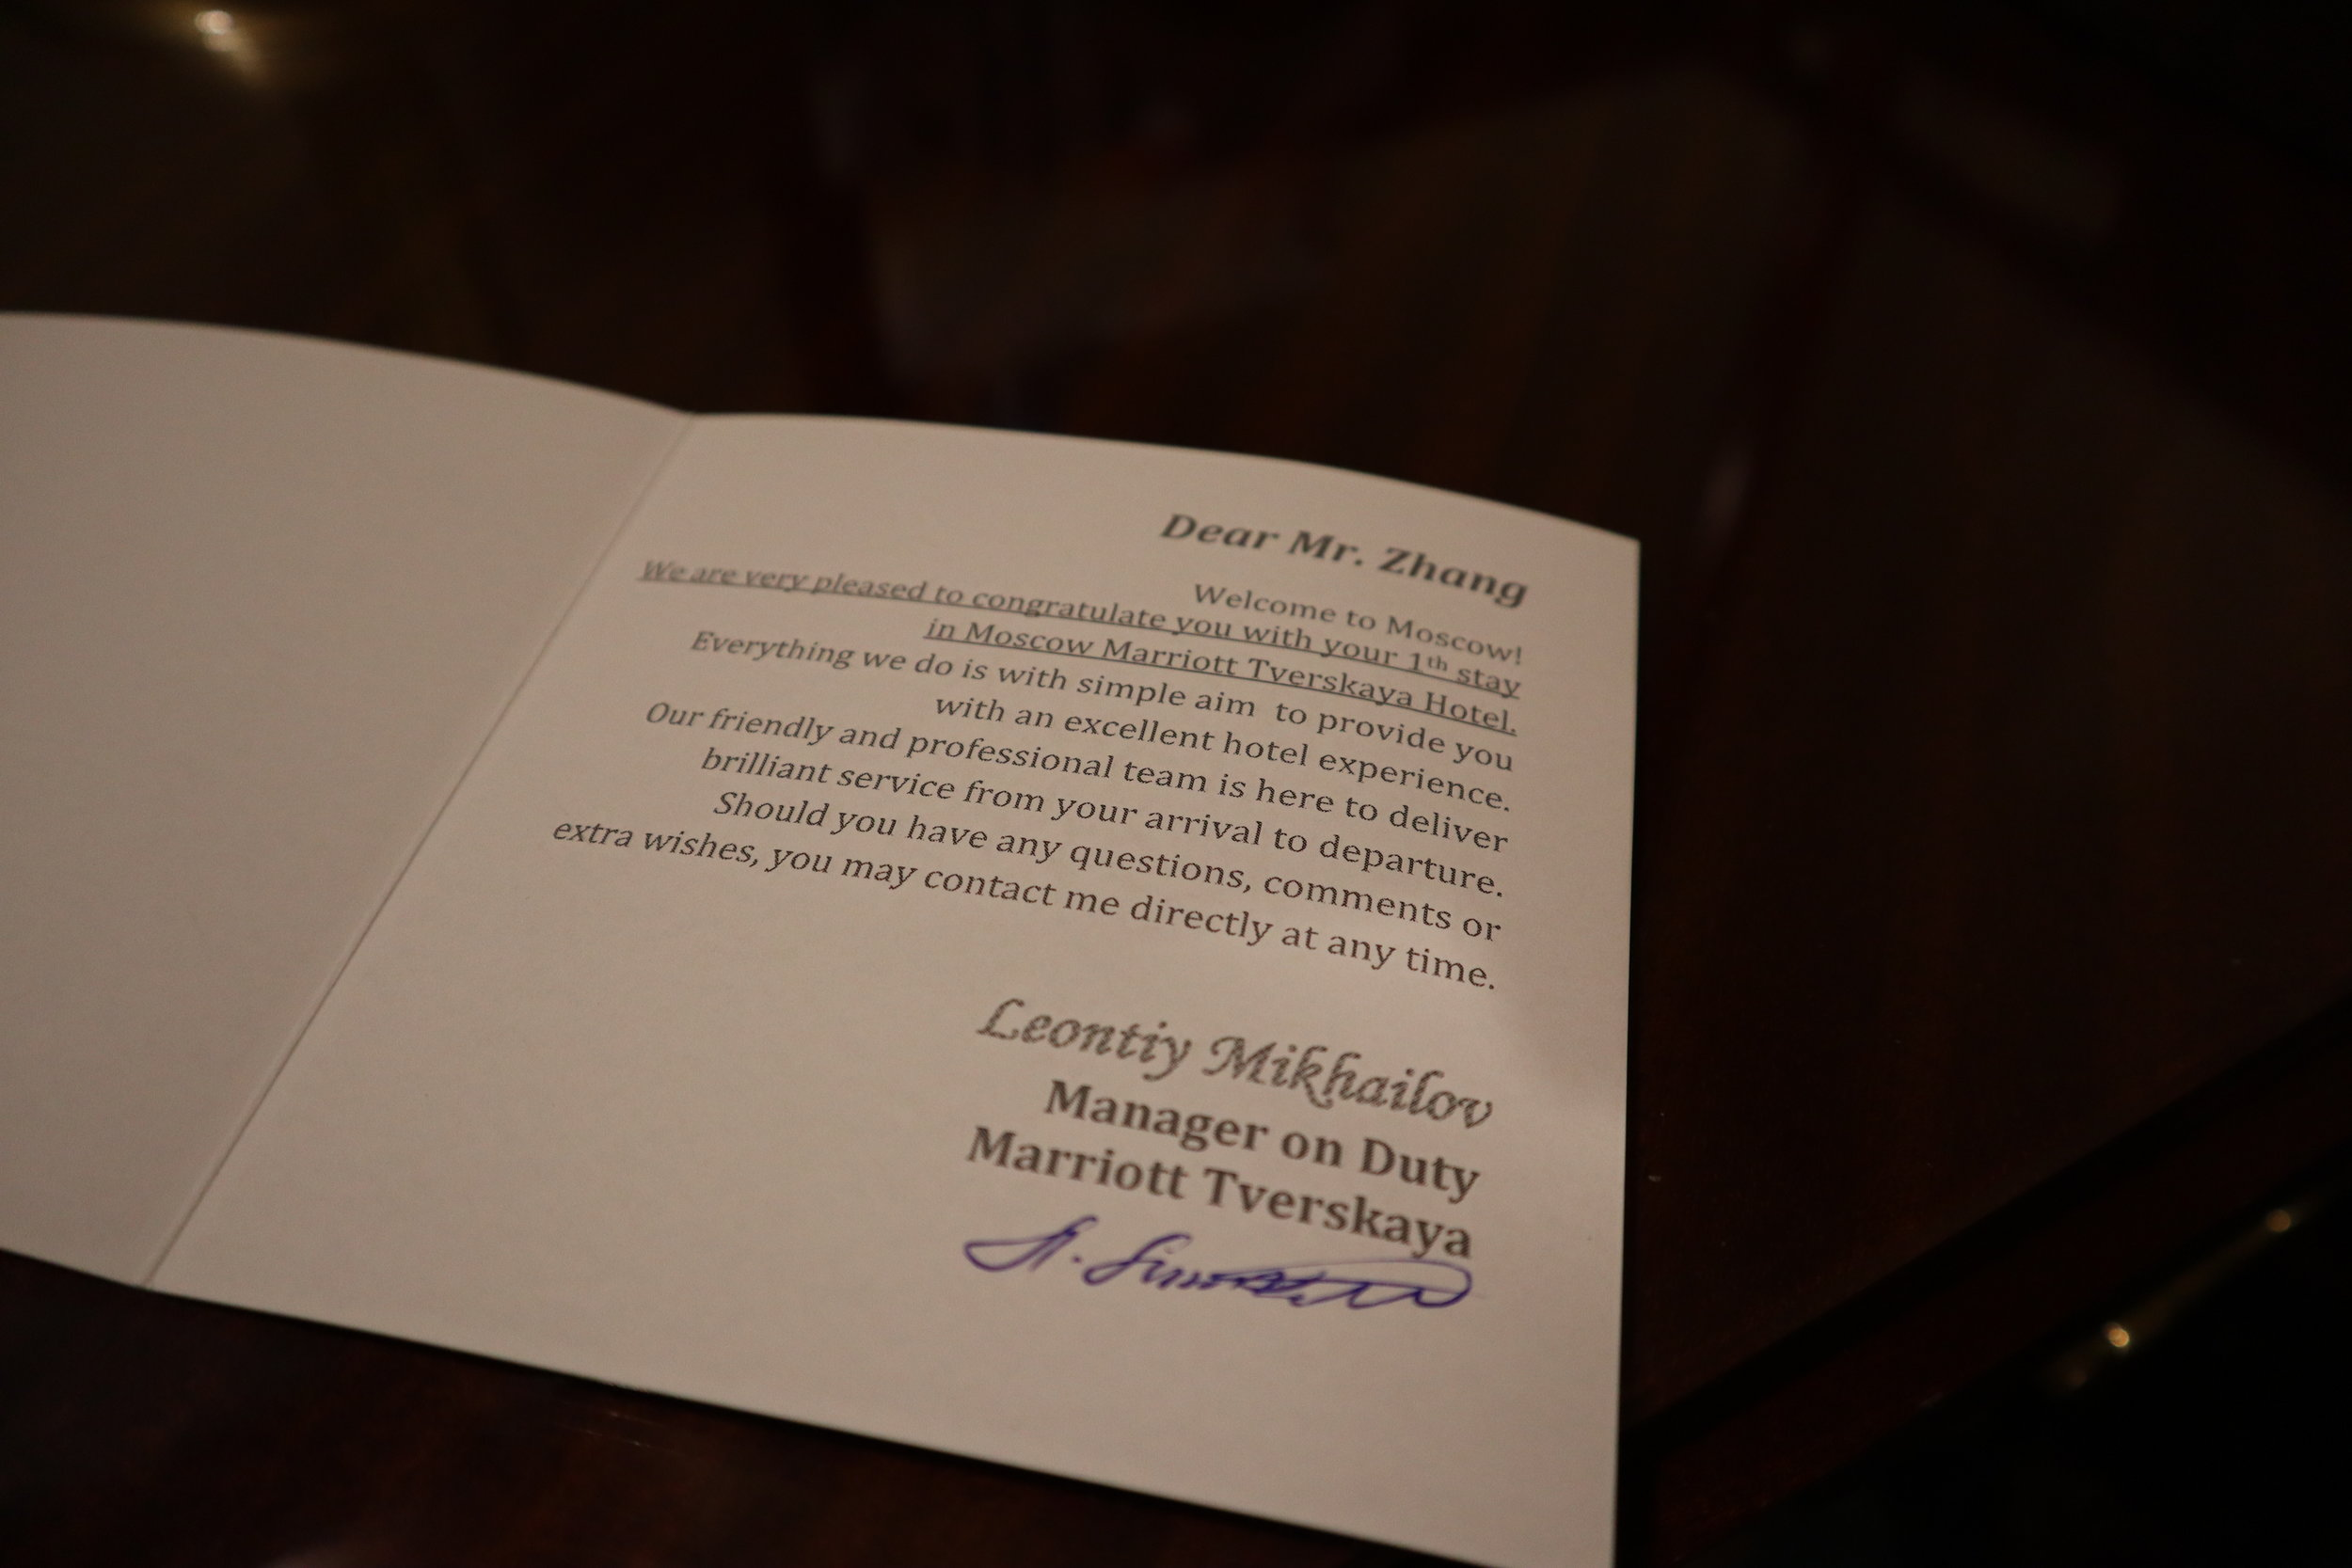 Marriott Moscow Tverskaya – Welcome letter